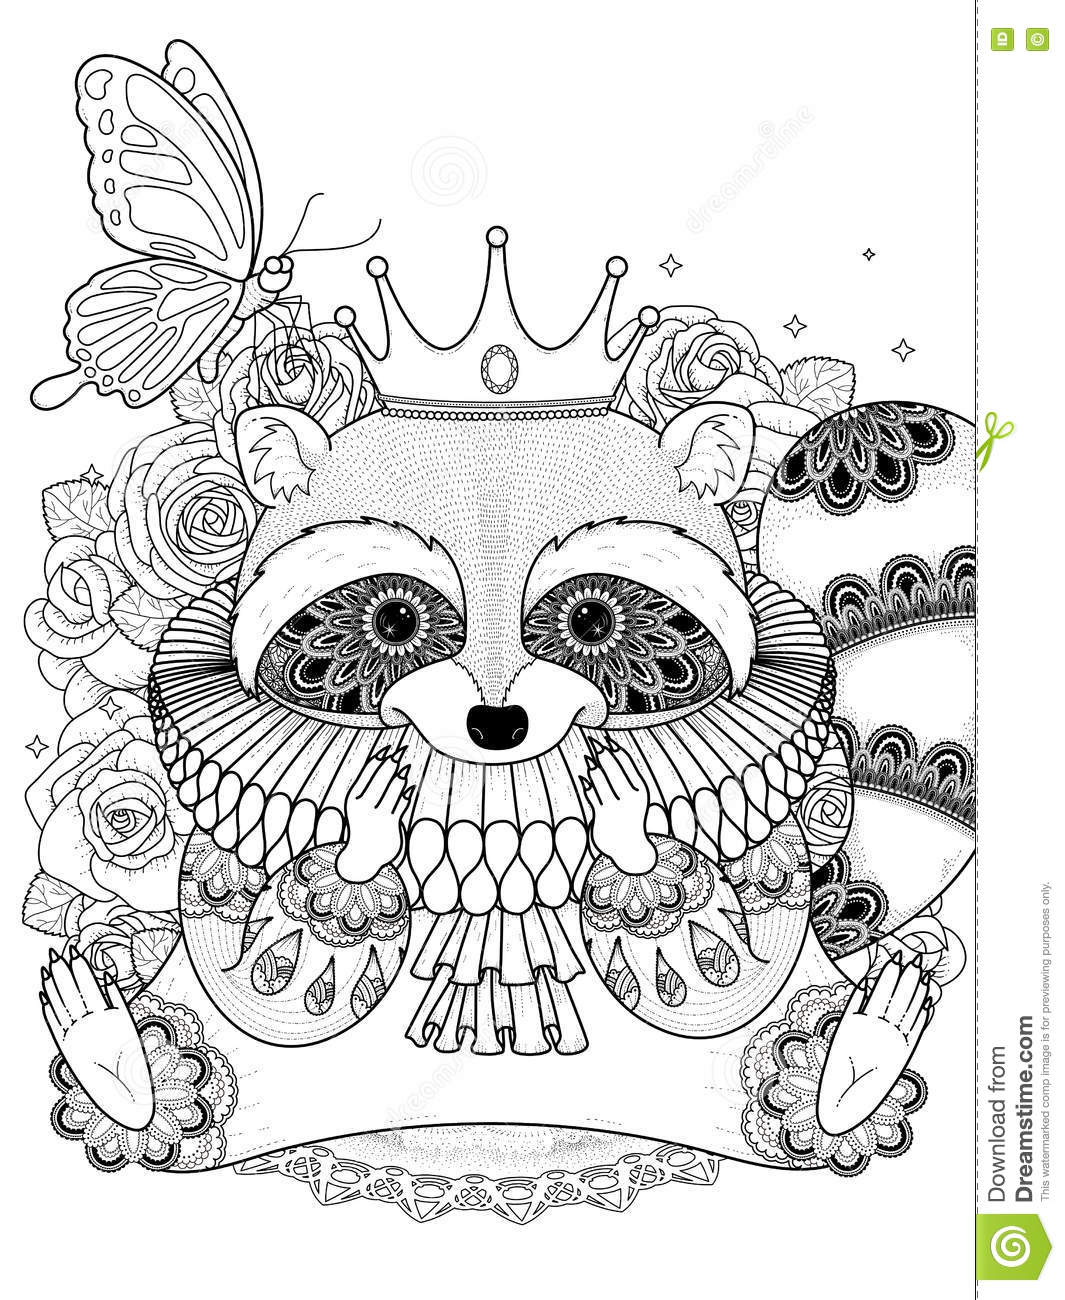 Adorable Raccoon Coloring Page Stock Vector Illustration Of